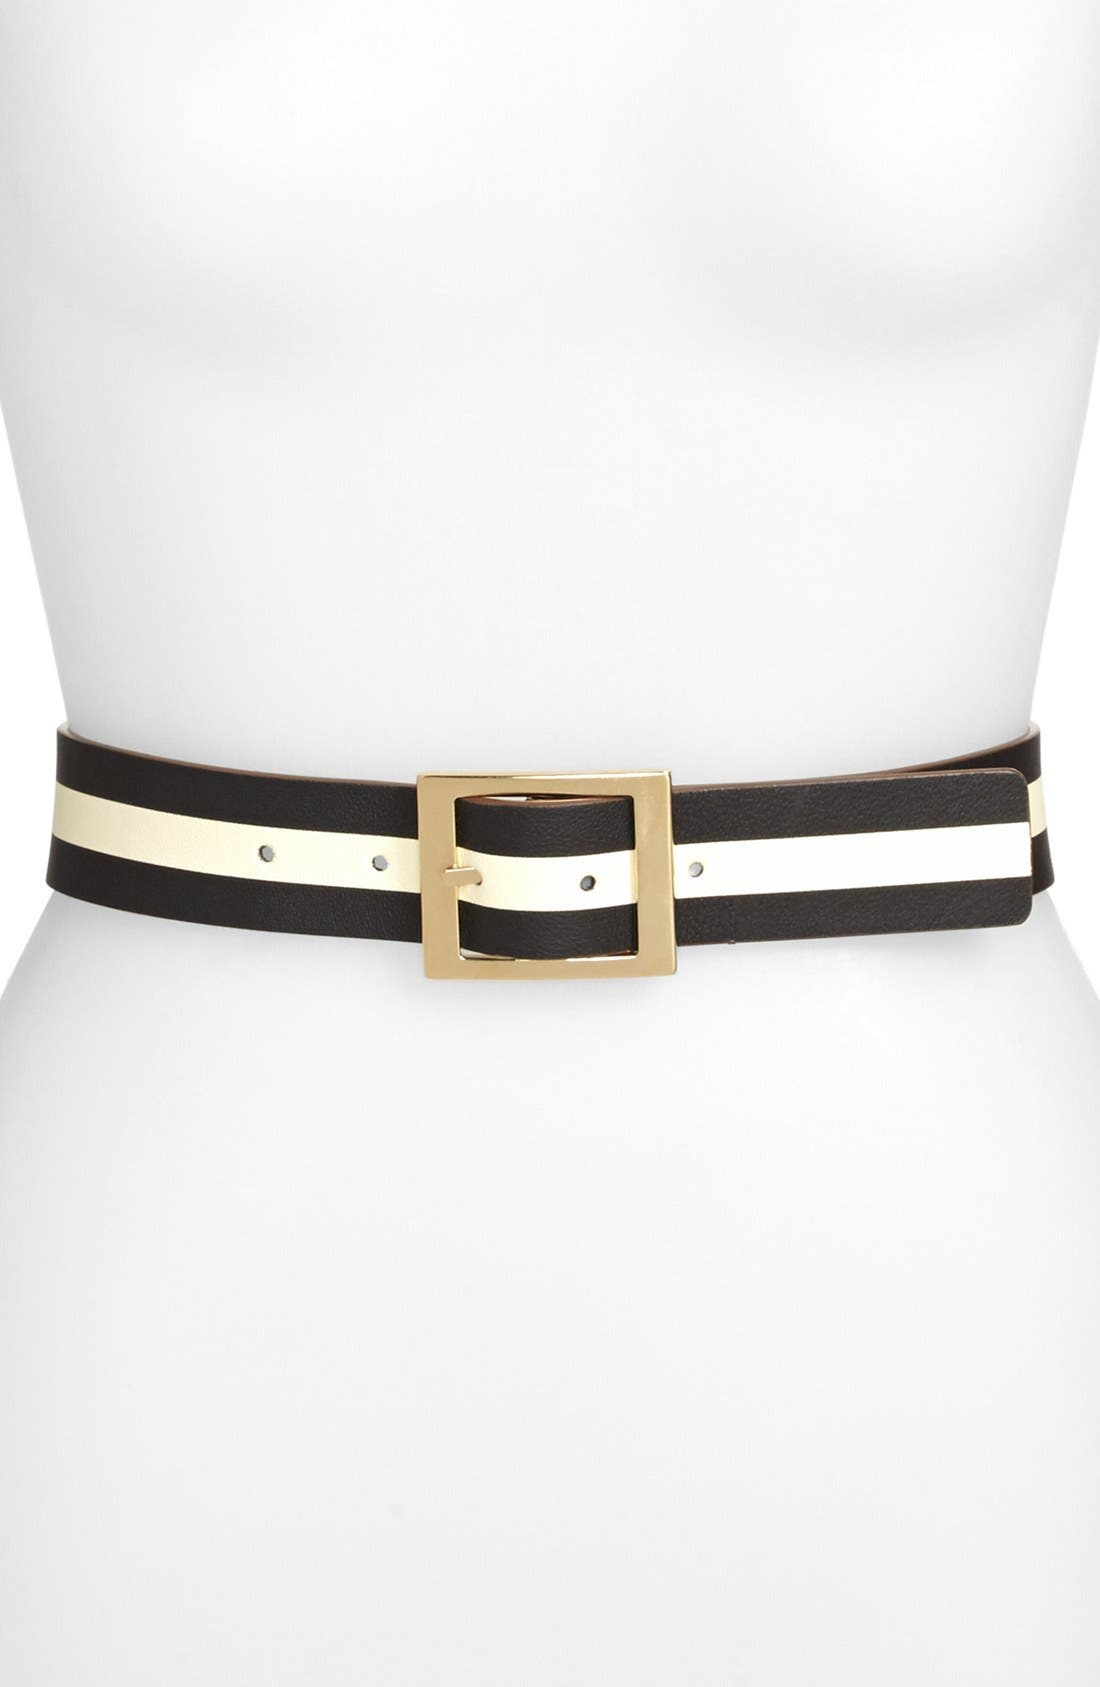 Main Image - kate spade new york reversible leather belt